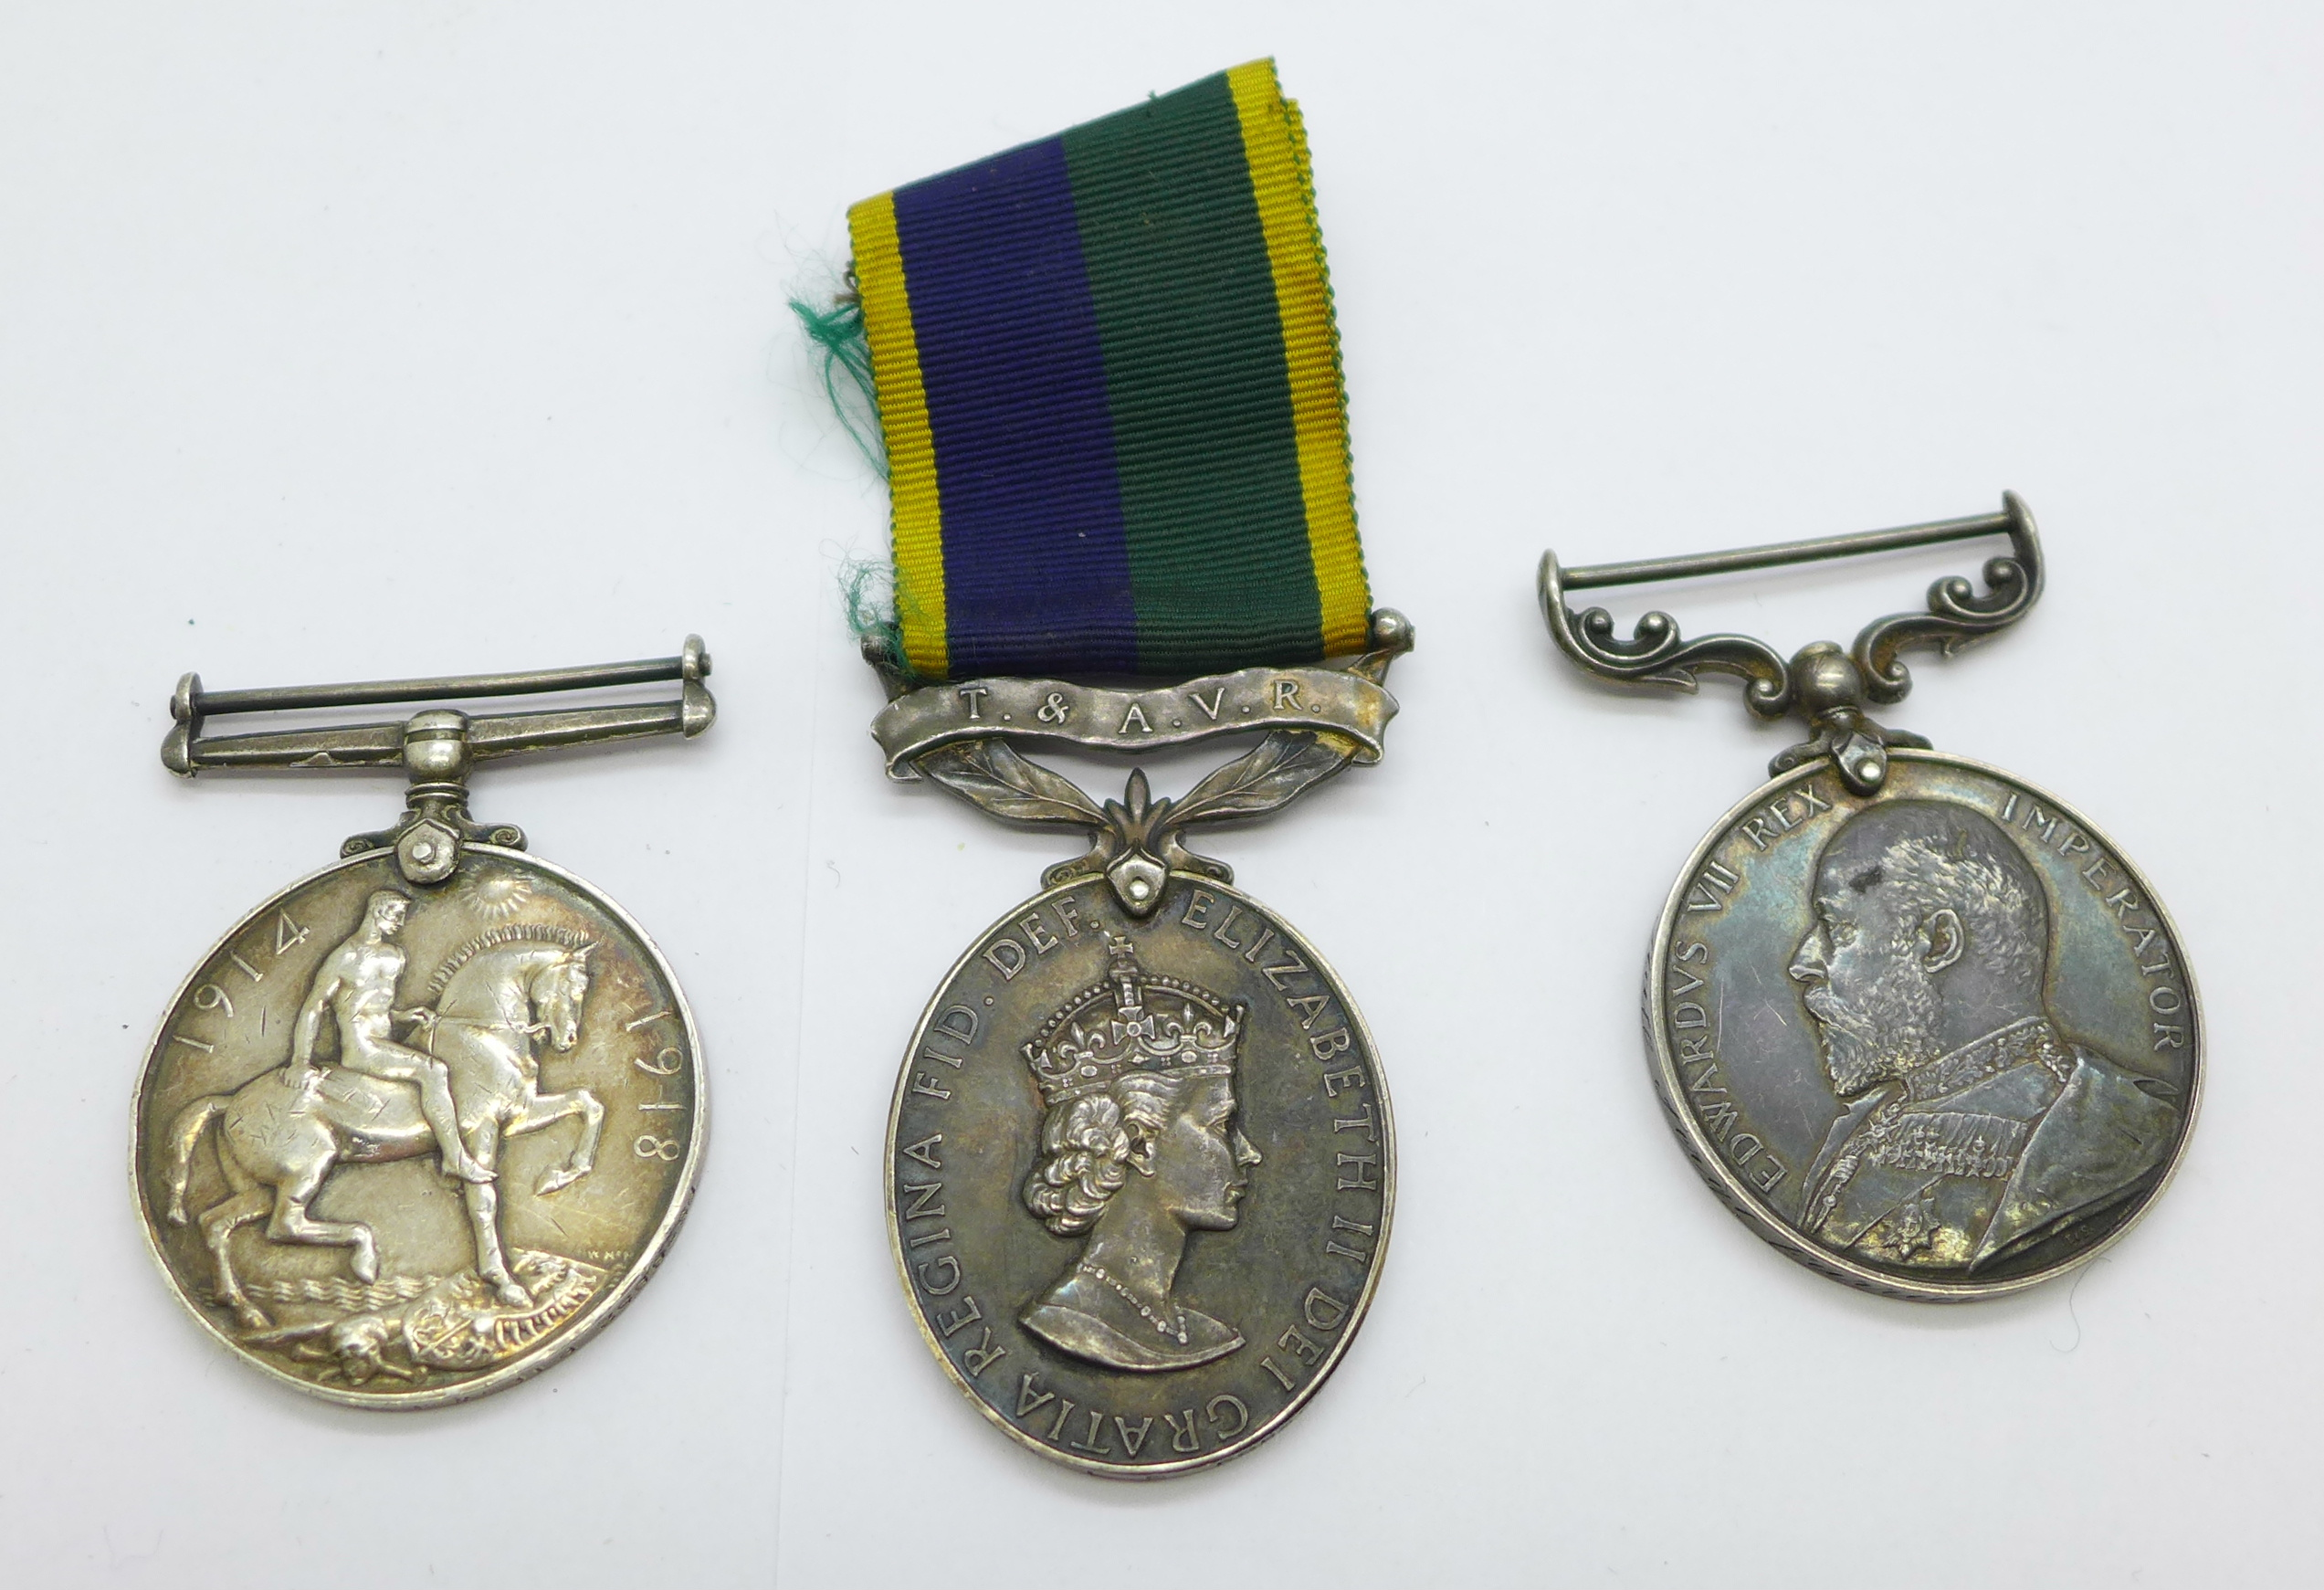 Three medals; WWI British War Medal to PS-8852 Pte W E Morgan R Fus, an Edward VII For Long